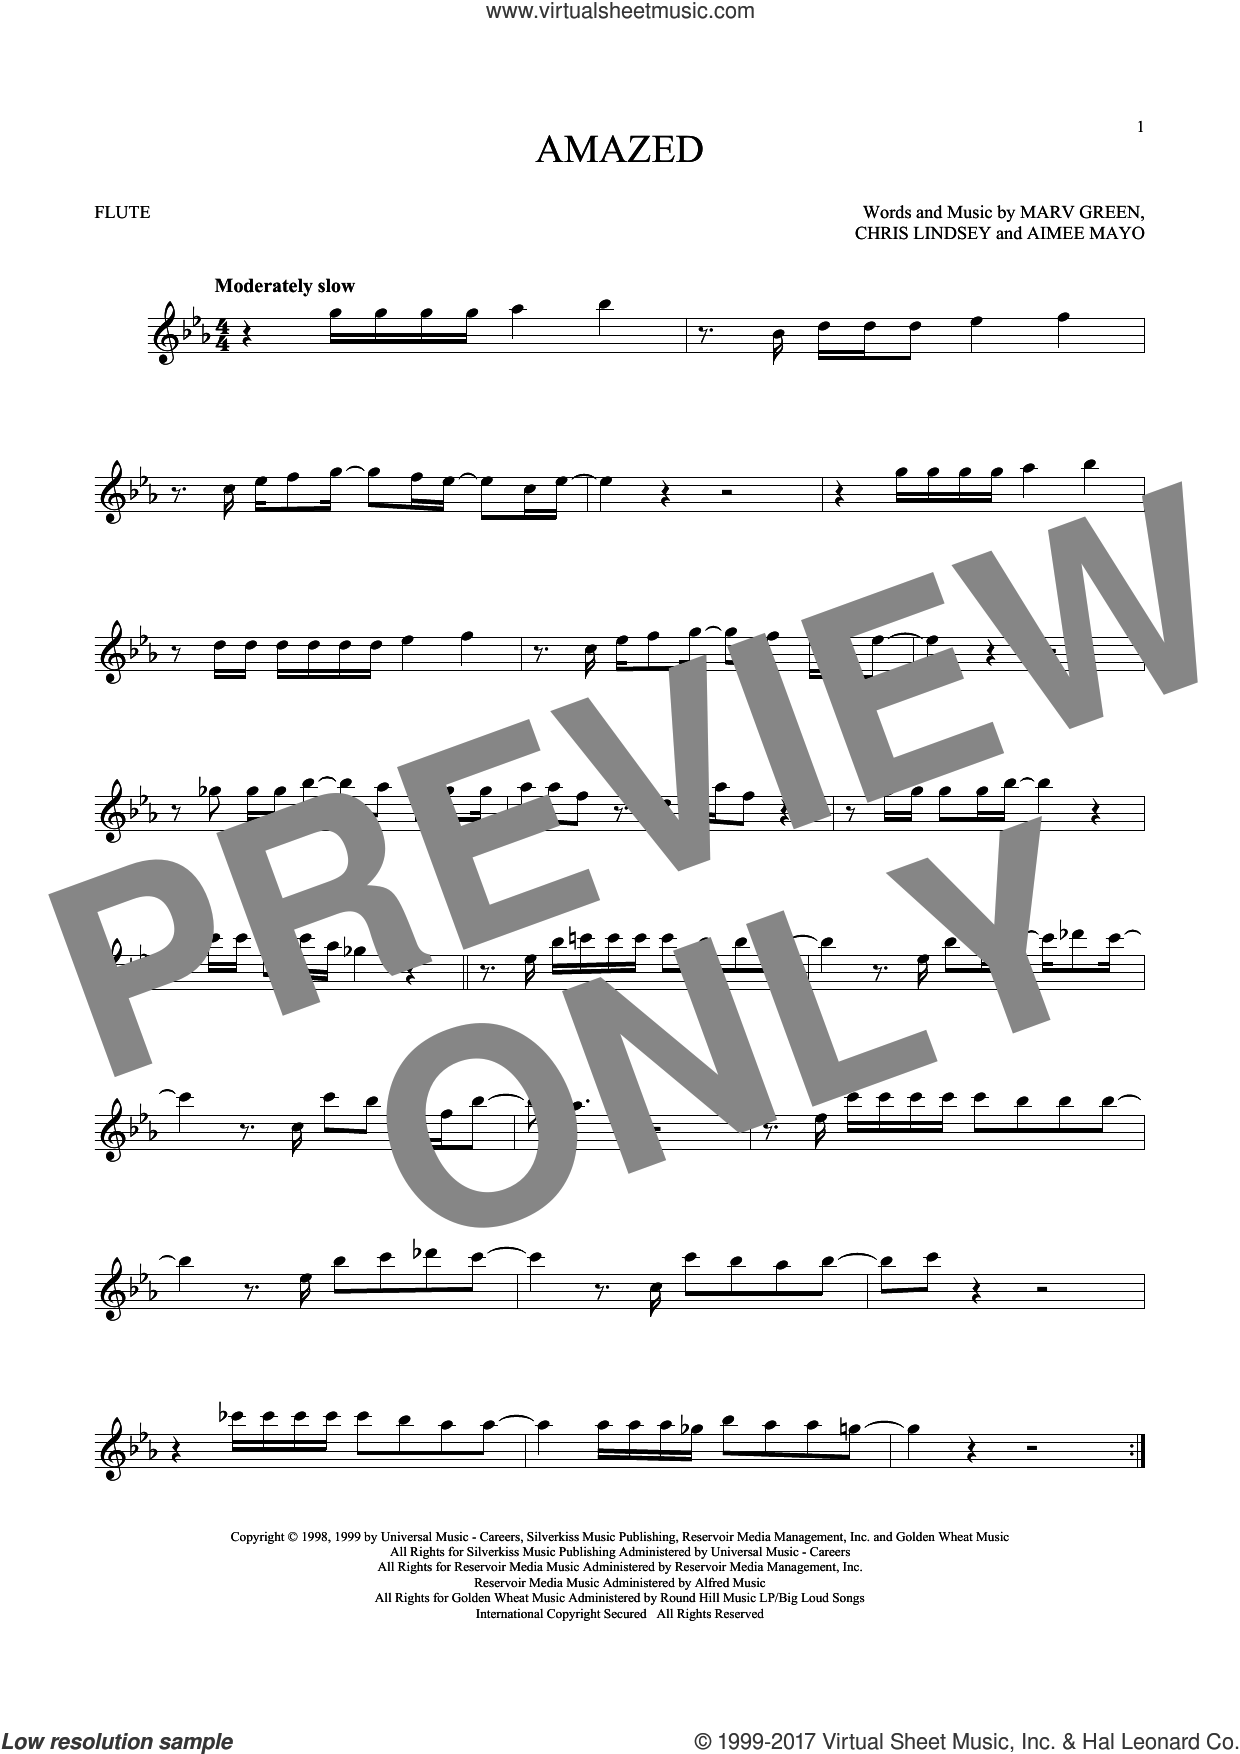 Amazed sheet music for flute solo by Lonestar, Aimee Mayo, Chris Lindsey and Marv Green, intermediate skill level